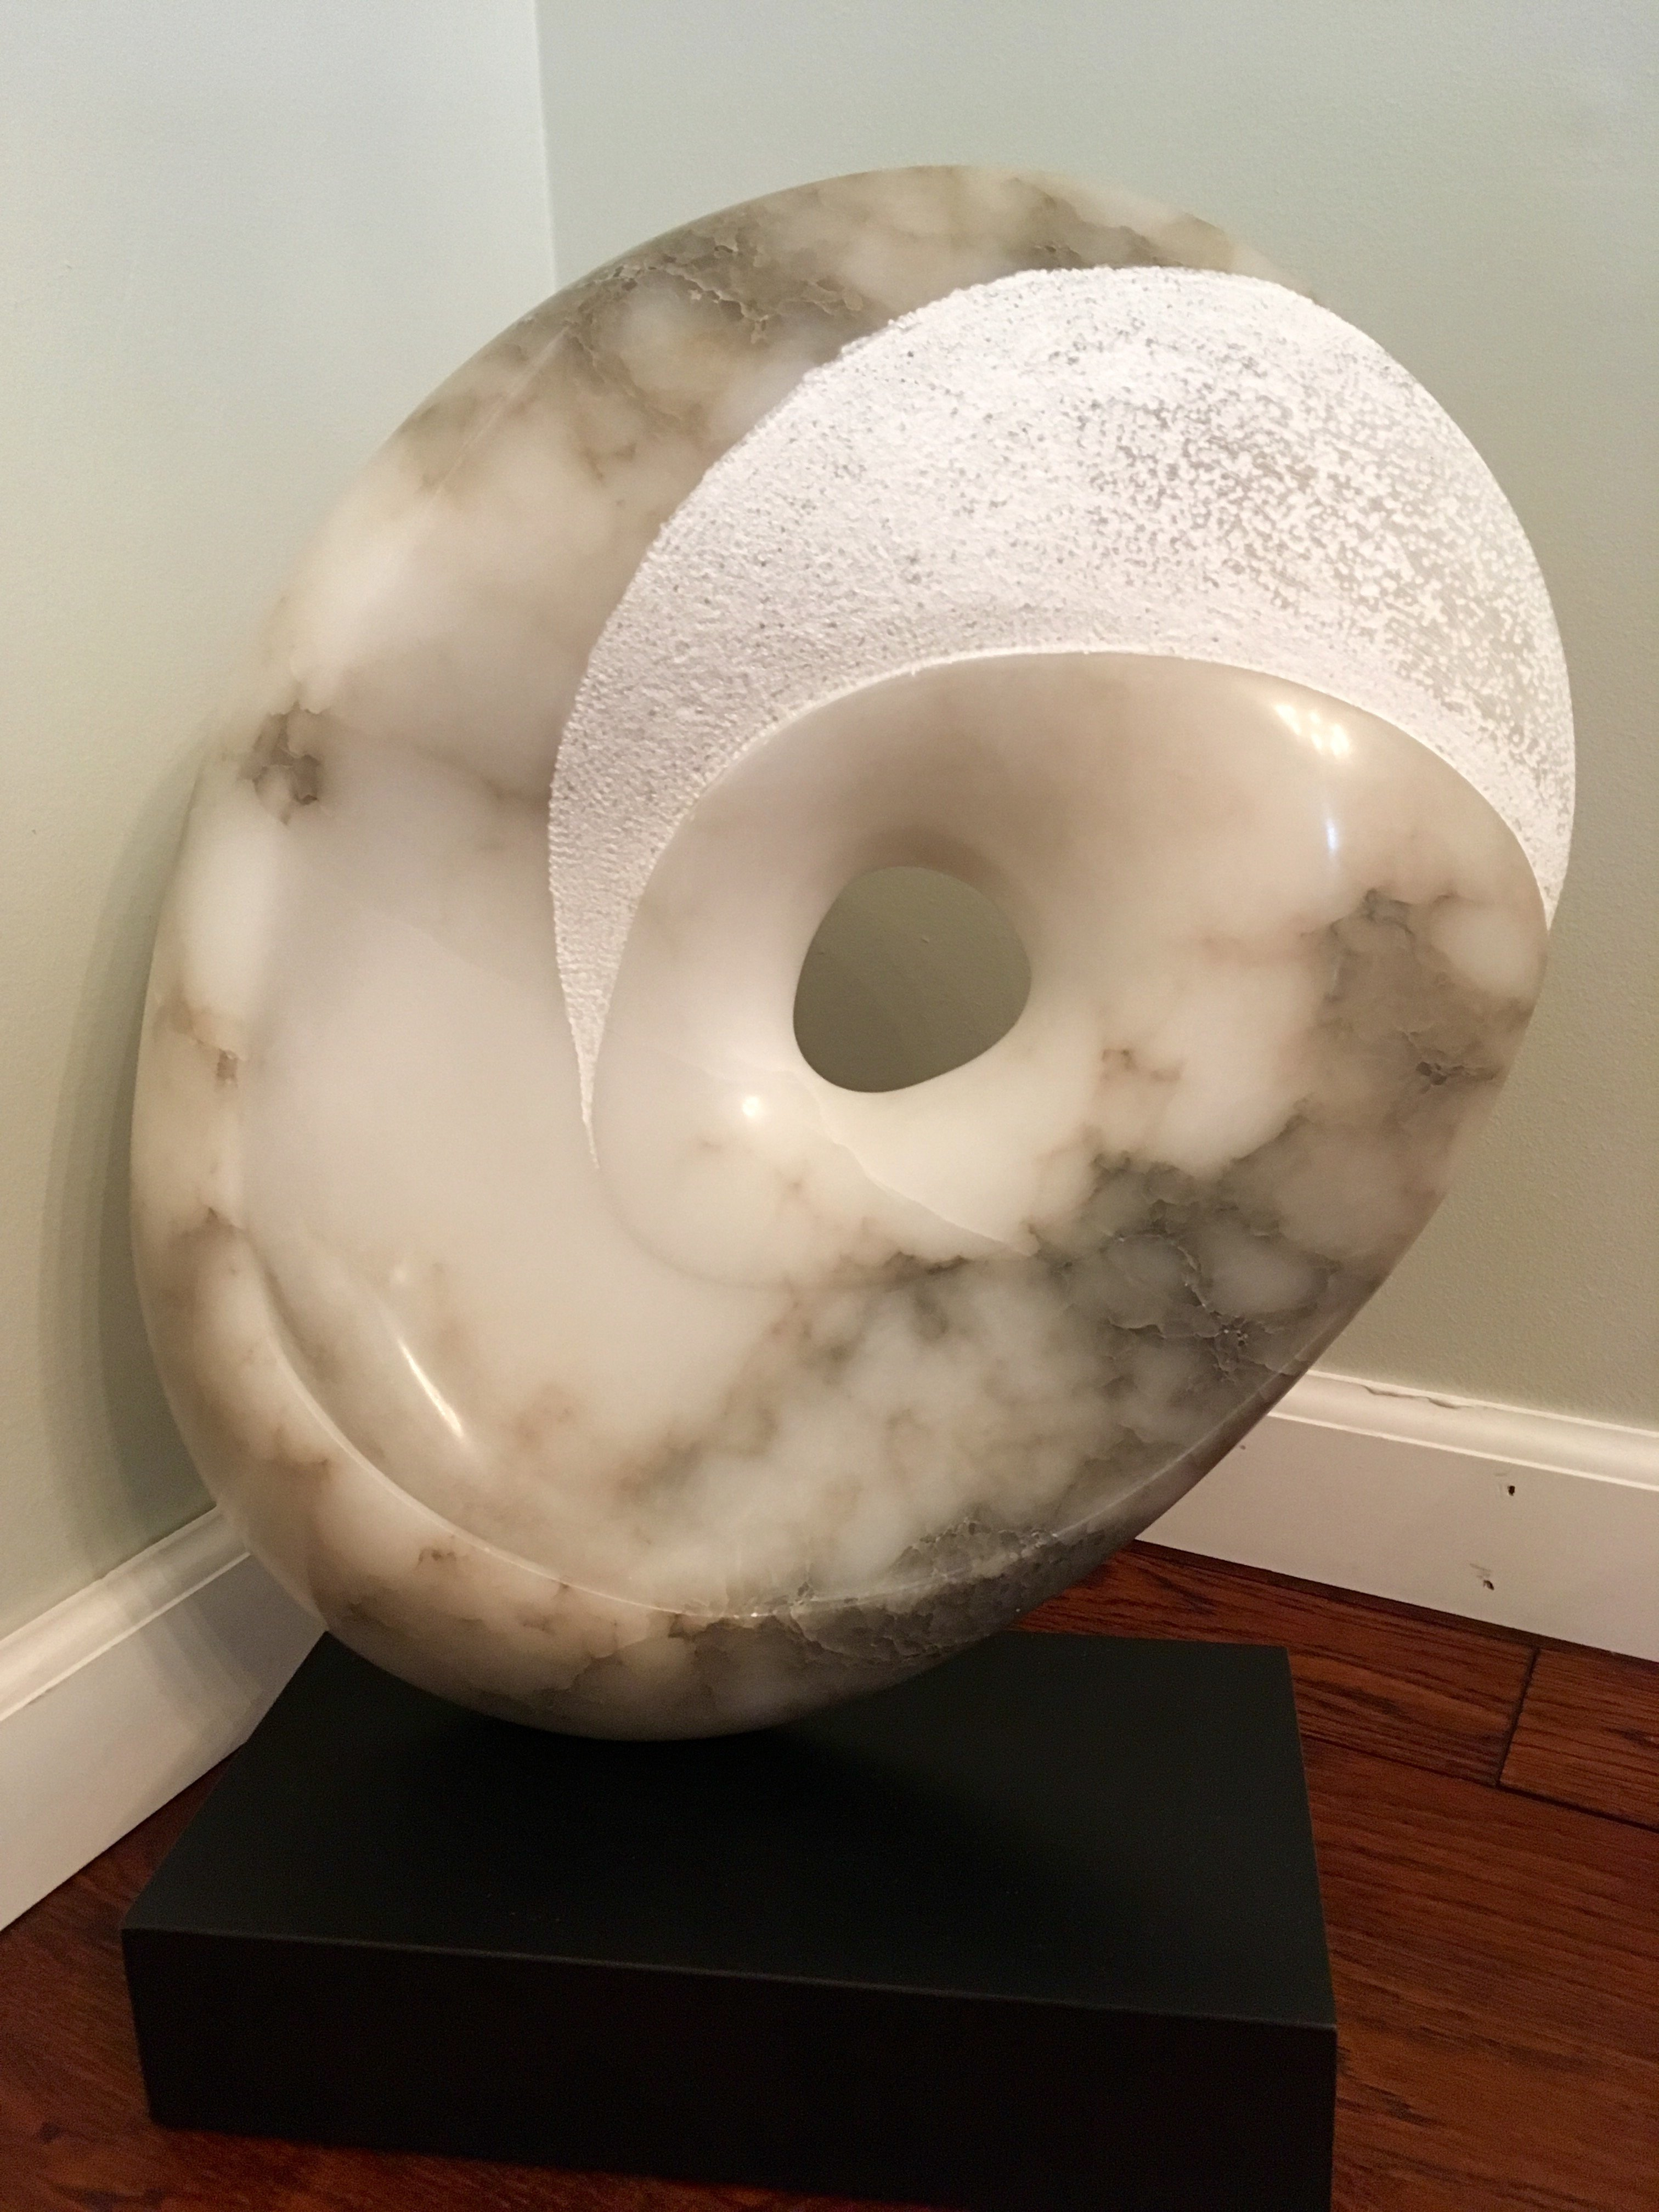 Terry Mollo; Eye Of The Storm, 2018, Original Sculpture Stone, 18 x 21 inches. Artwork description: 241 Clouds heavy and white with dark ominous threats ahead. Alabaster. ...